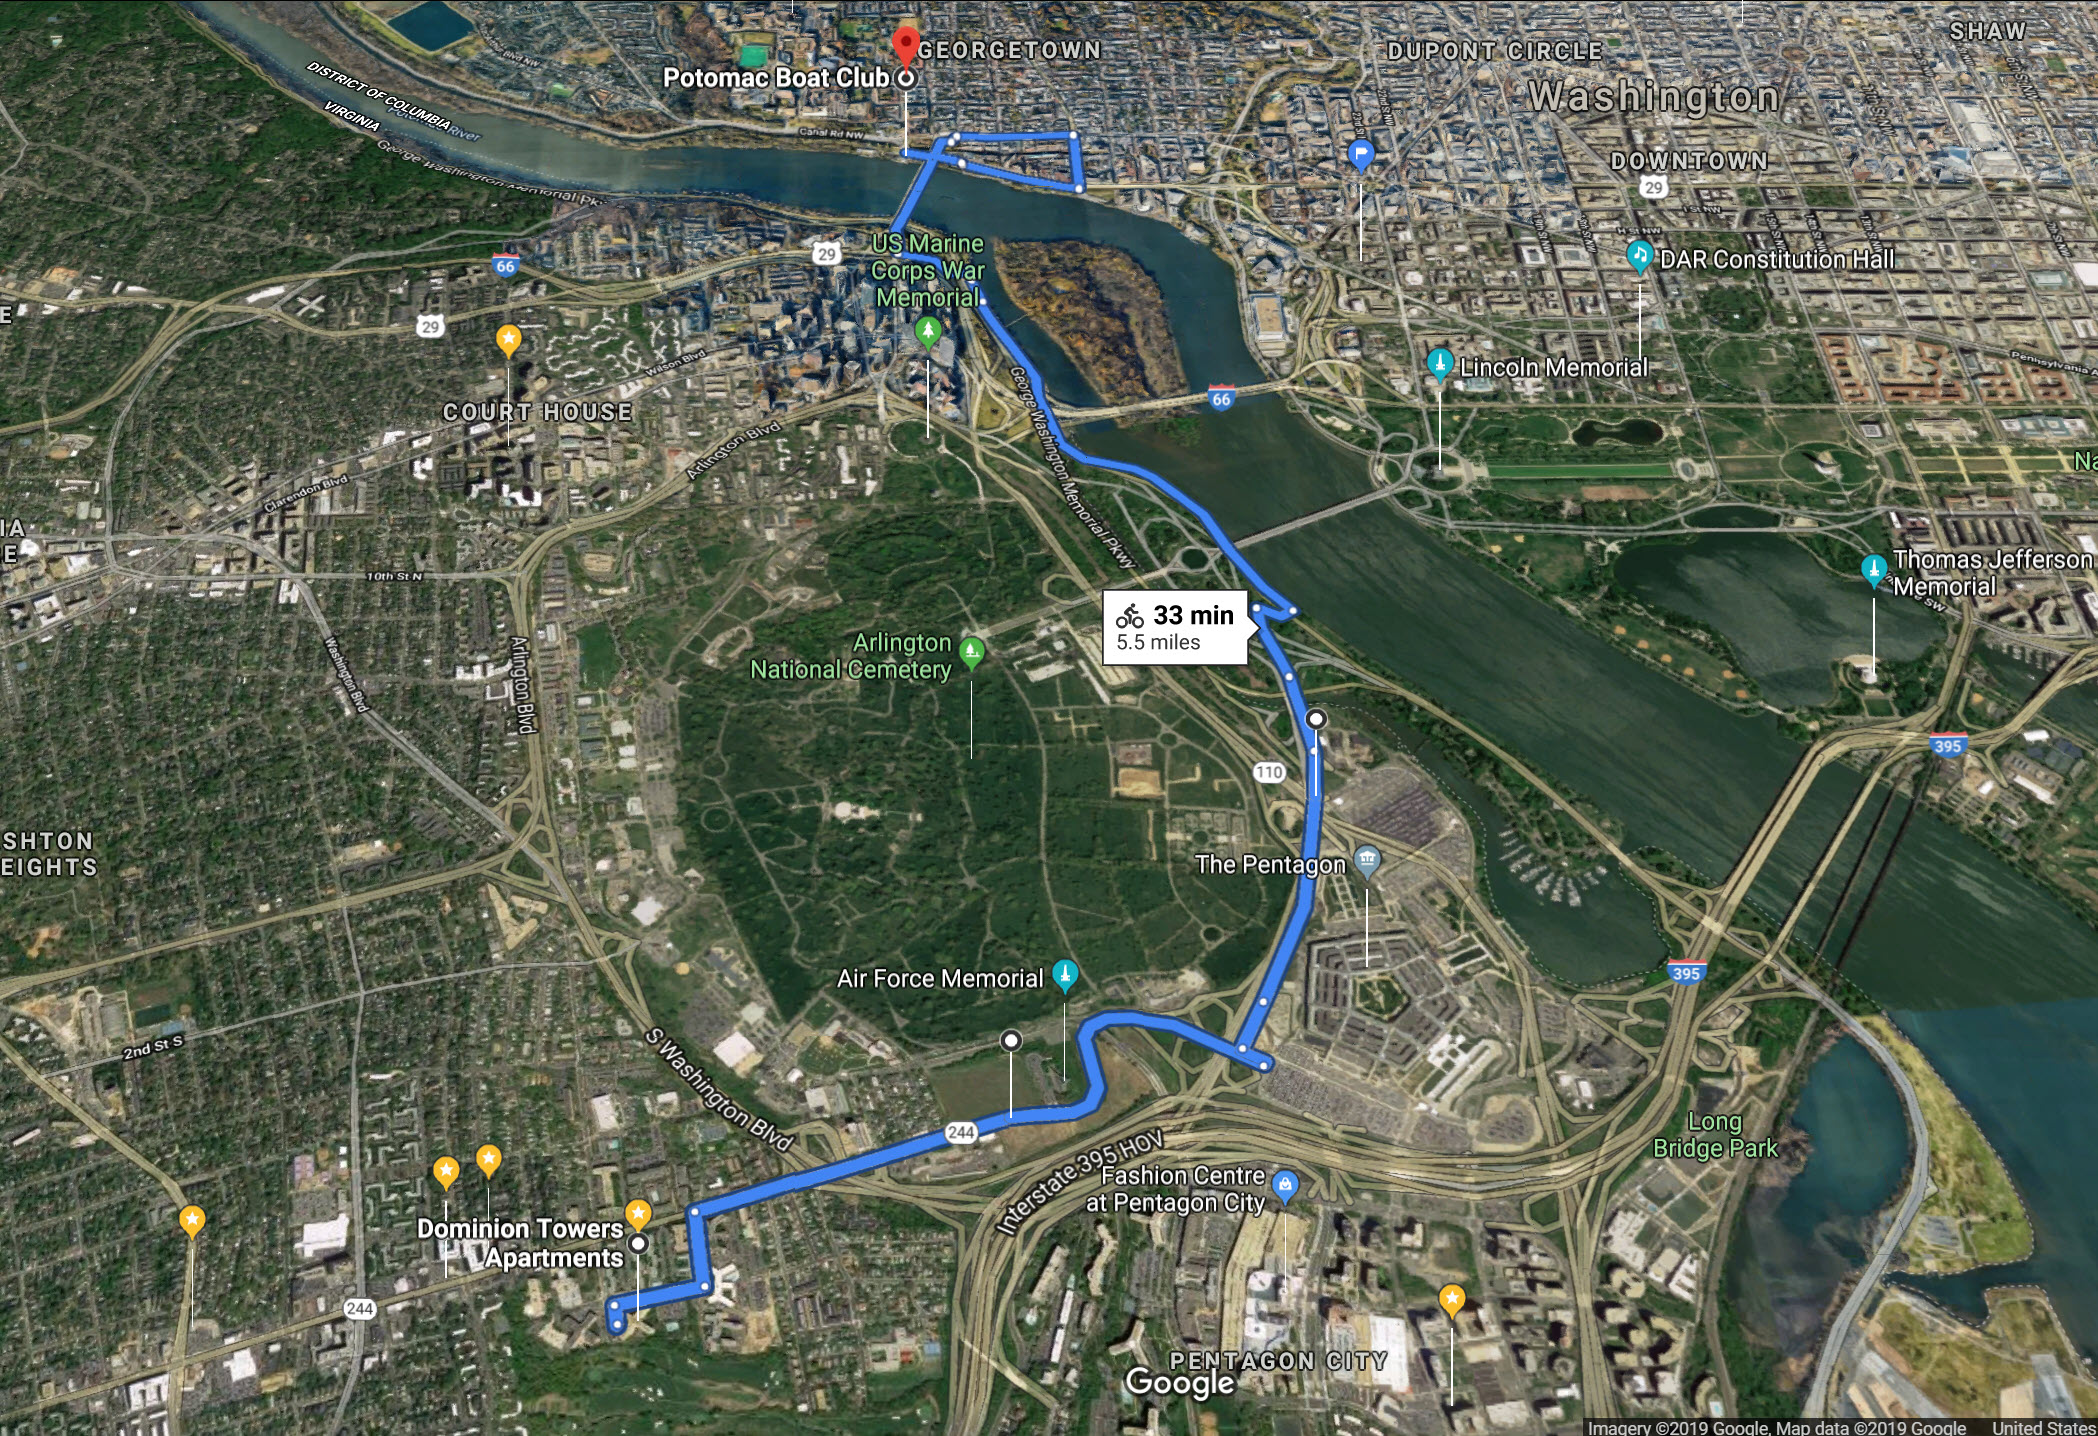 My proposed routes to commute to the Potomac Boat Club from Columbia Heights